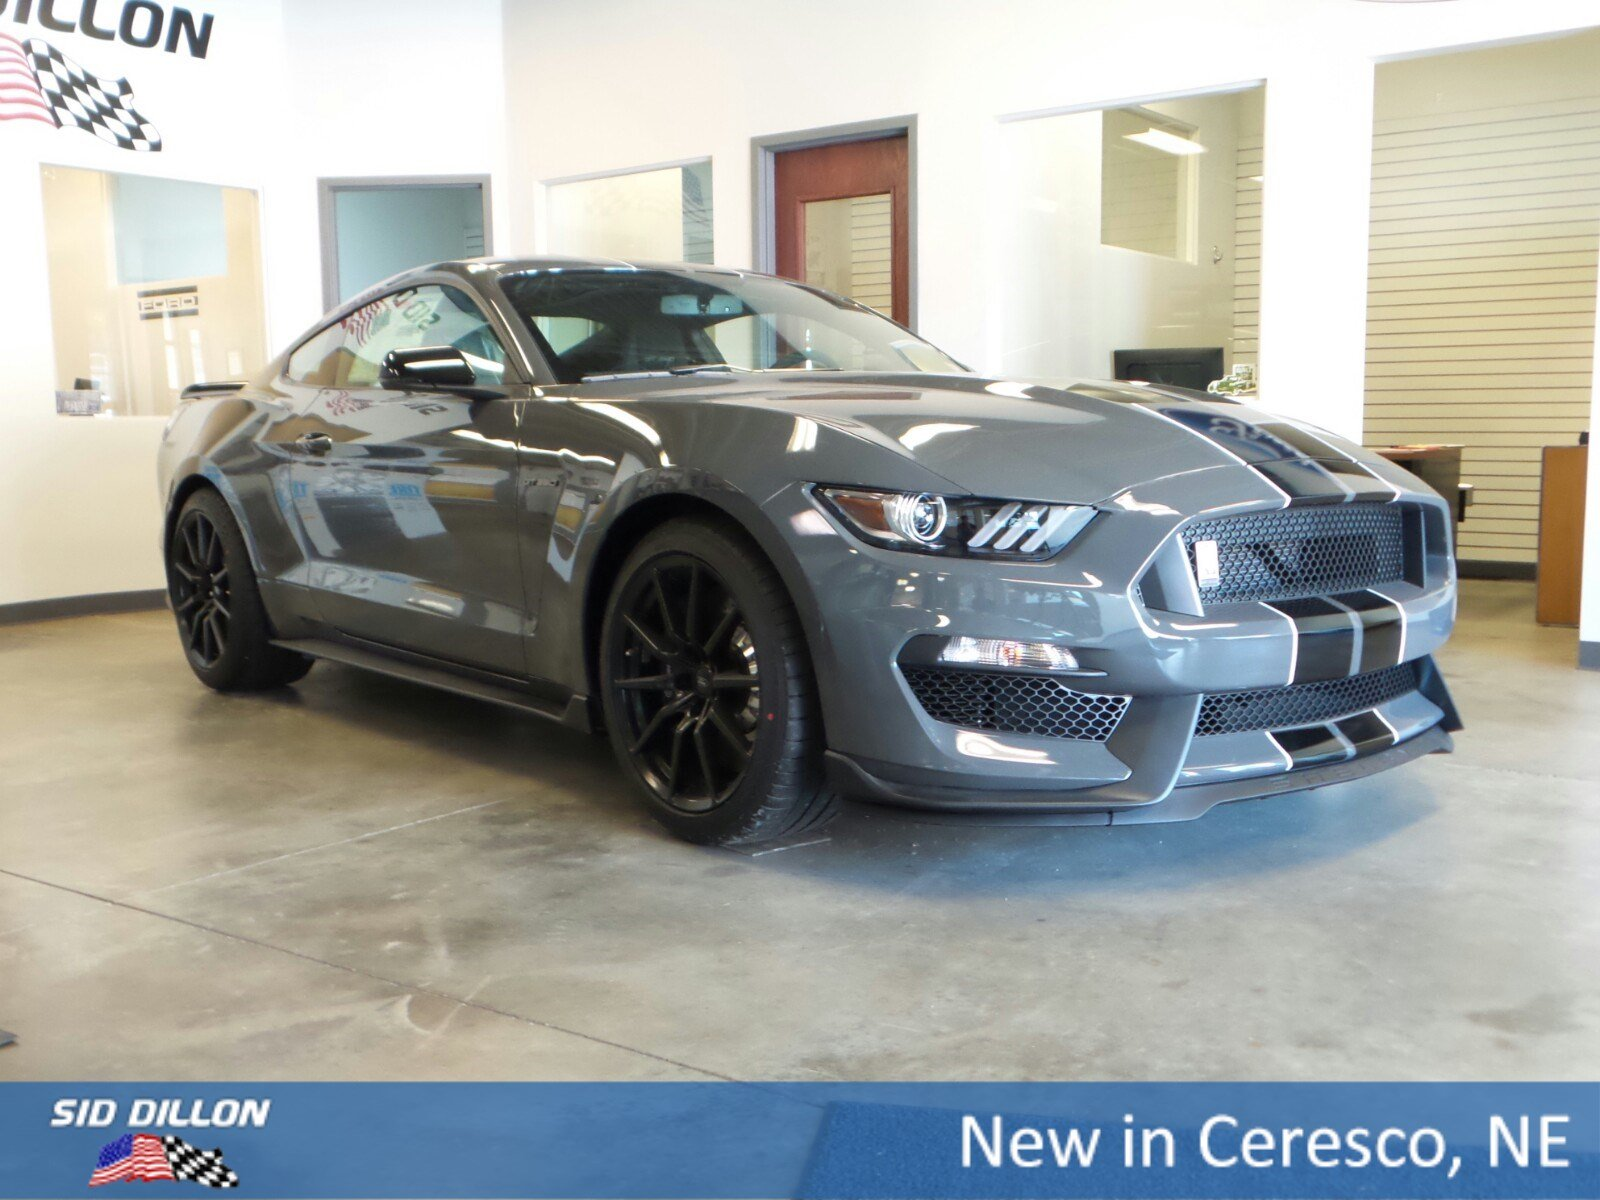 New 2018 Ford Mustang Shelby GT350 2 Door Coupe in Ceresco 9J214